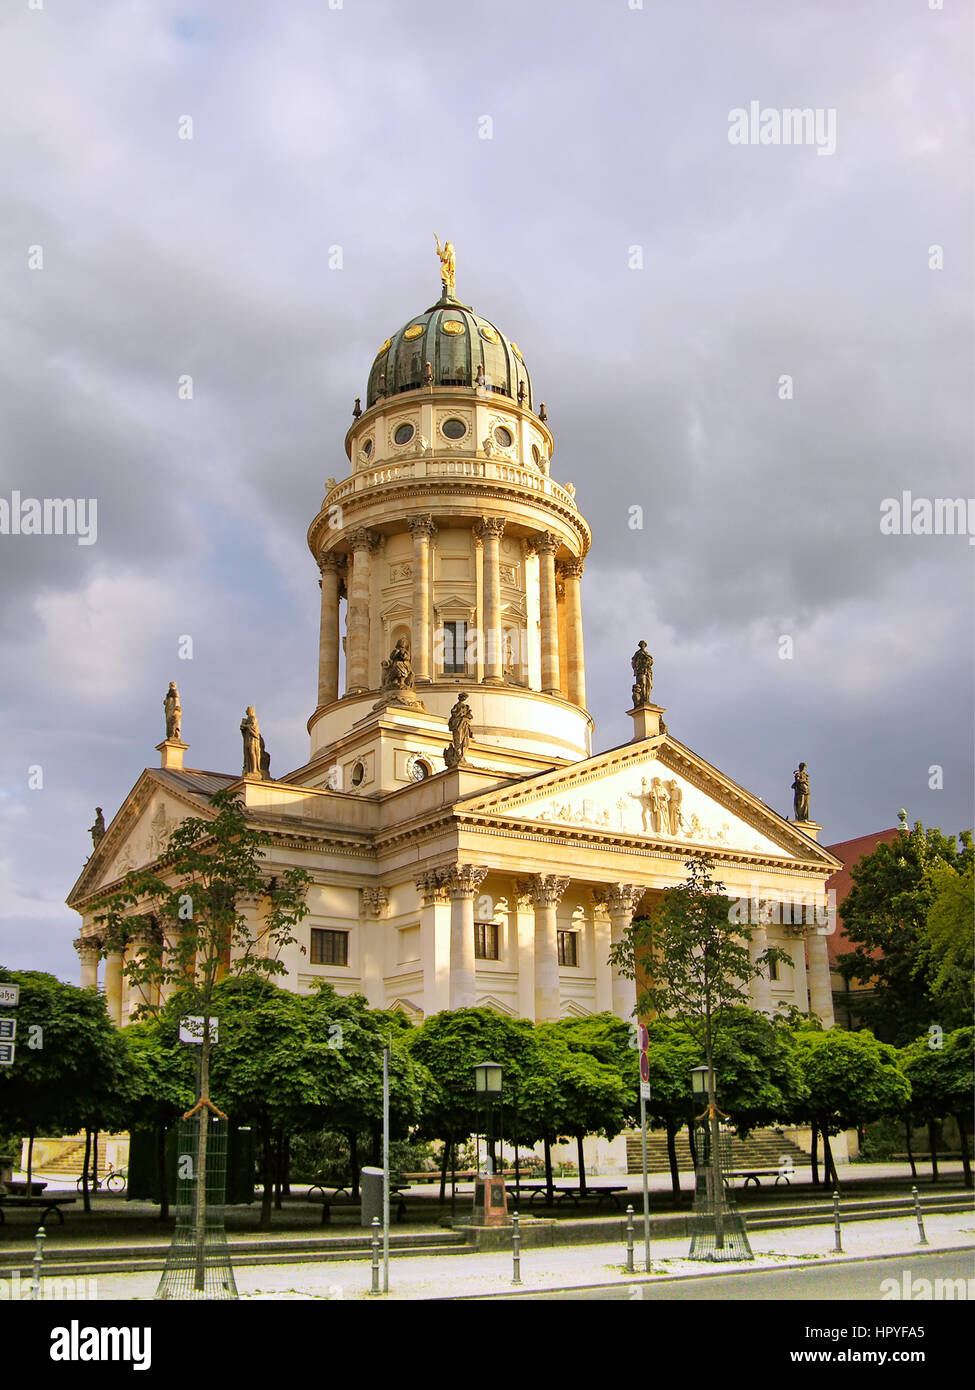 French Cathedral (Franzoesischer Dom), Berlin, Germany Stock Photo